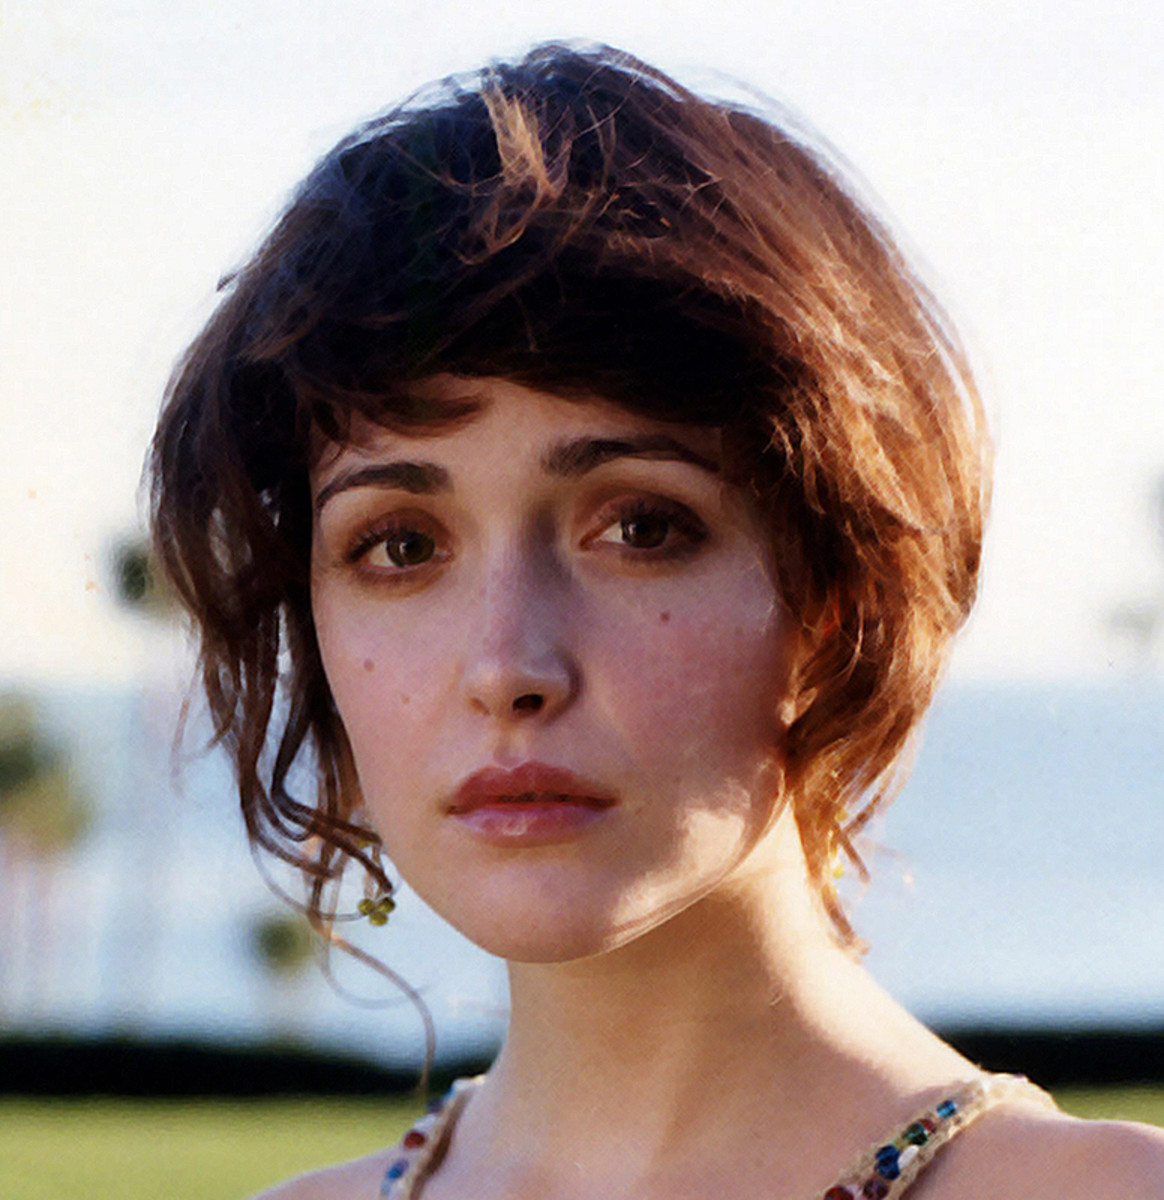 Rose Byrne : Now come on guys who could not fall for this face ?